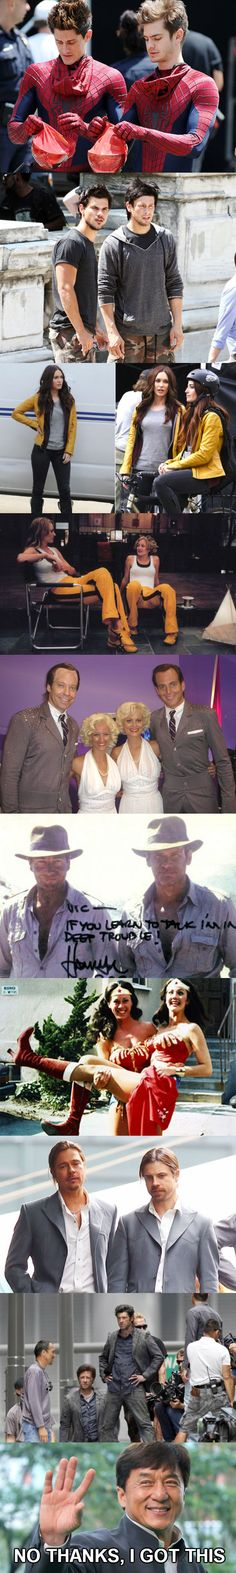 Celebs with their stunt doubles...and then there's Jackie Chan ;) lol